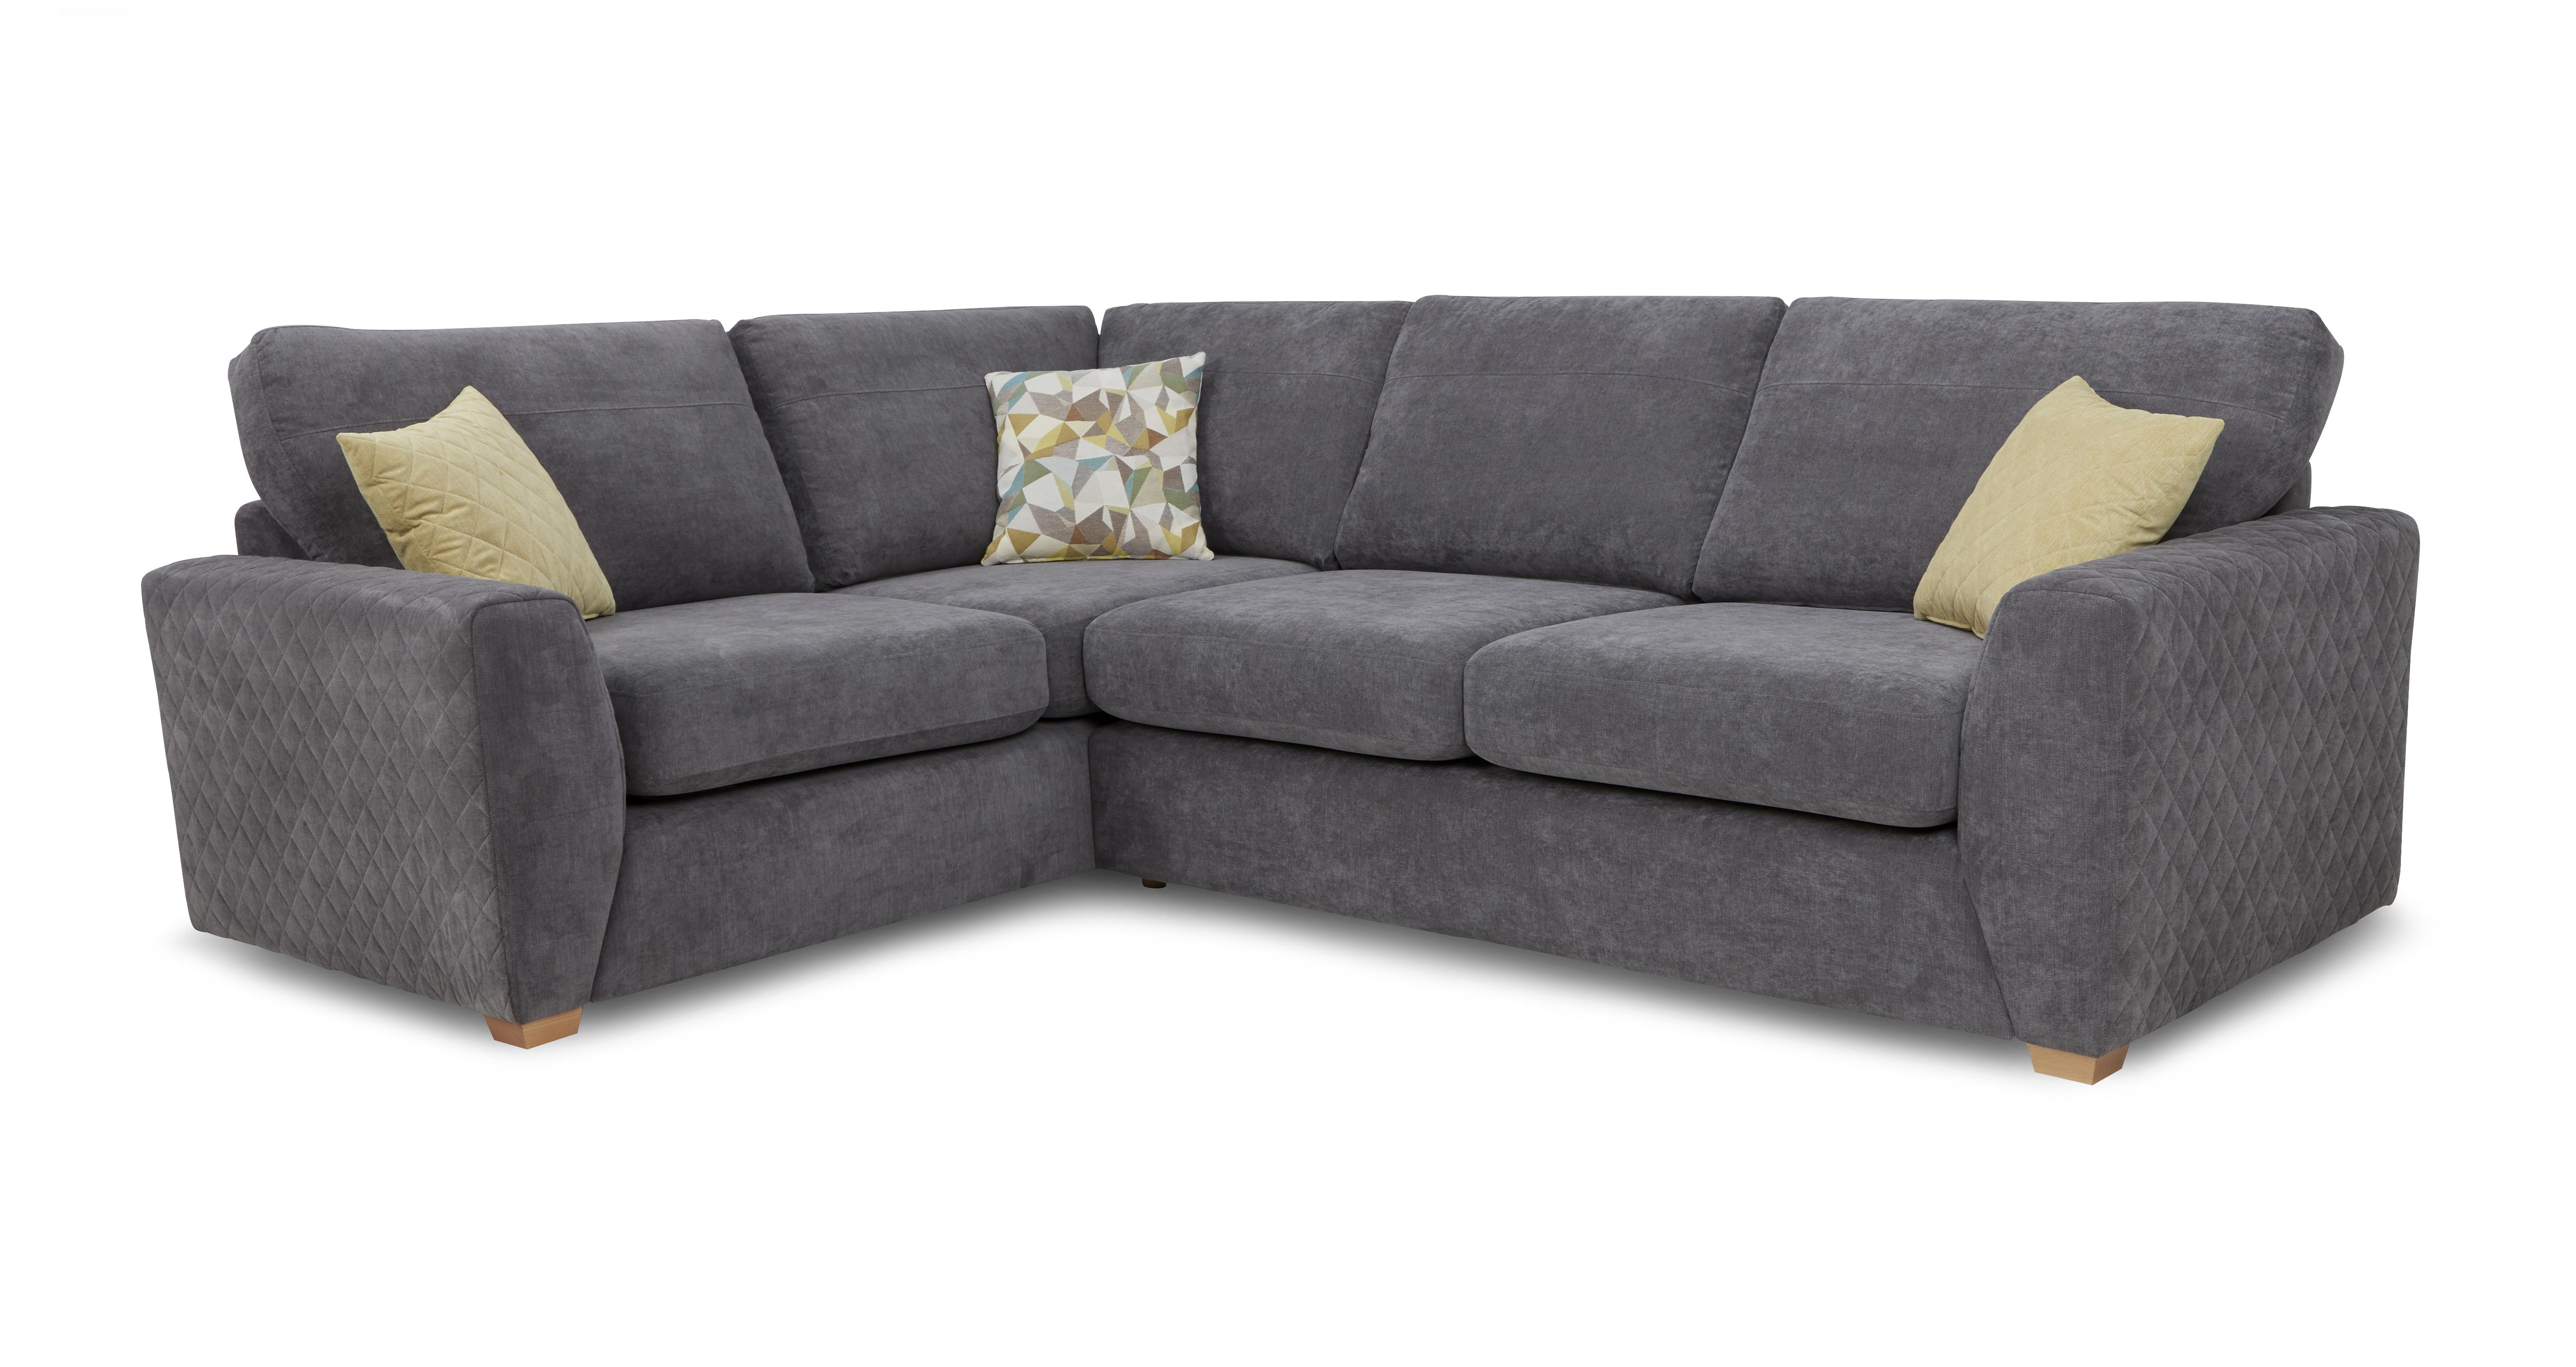 Astaire Right Hand Facing Arm Corner Deluxe Sofa Bed ...